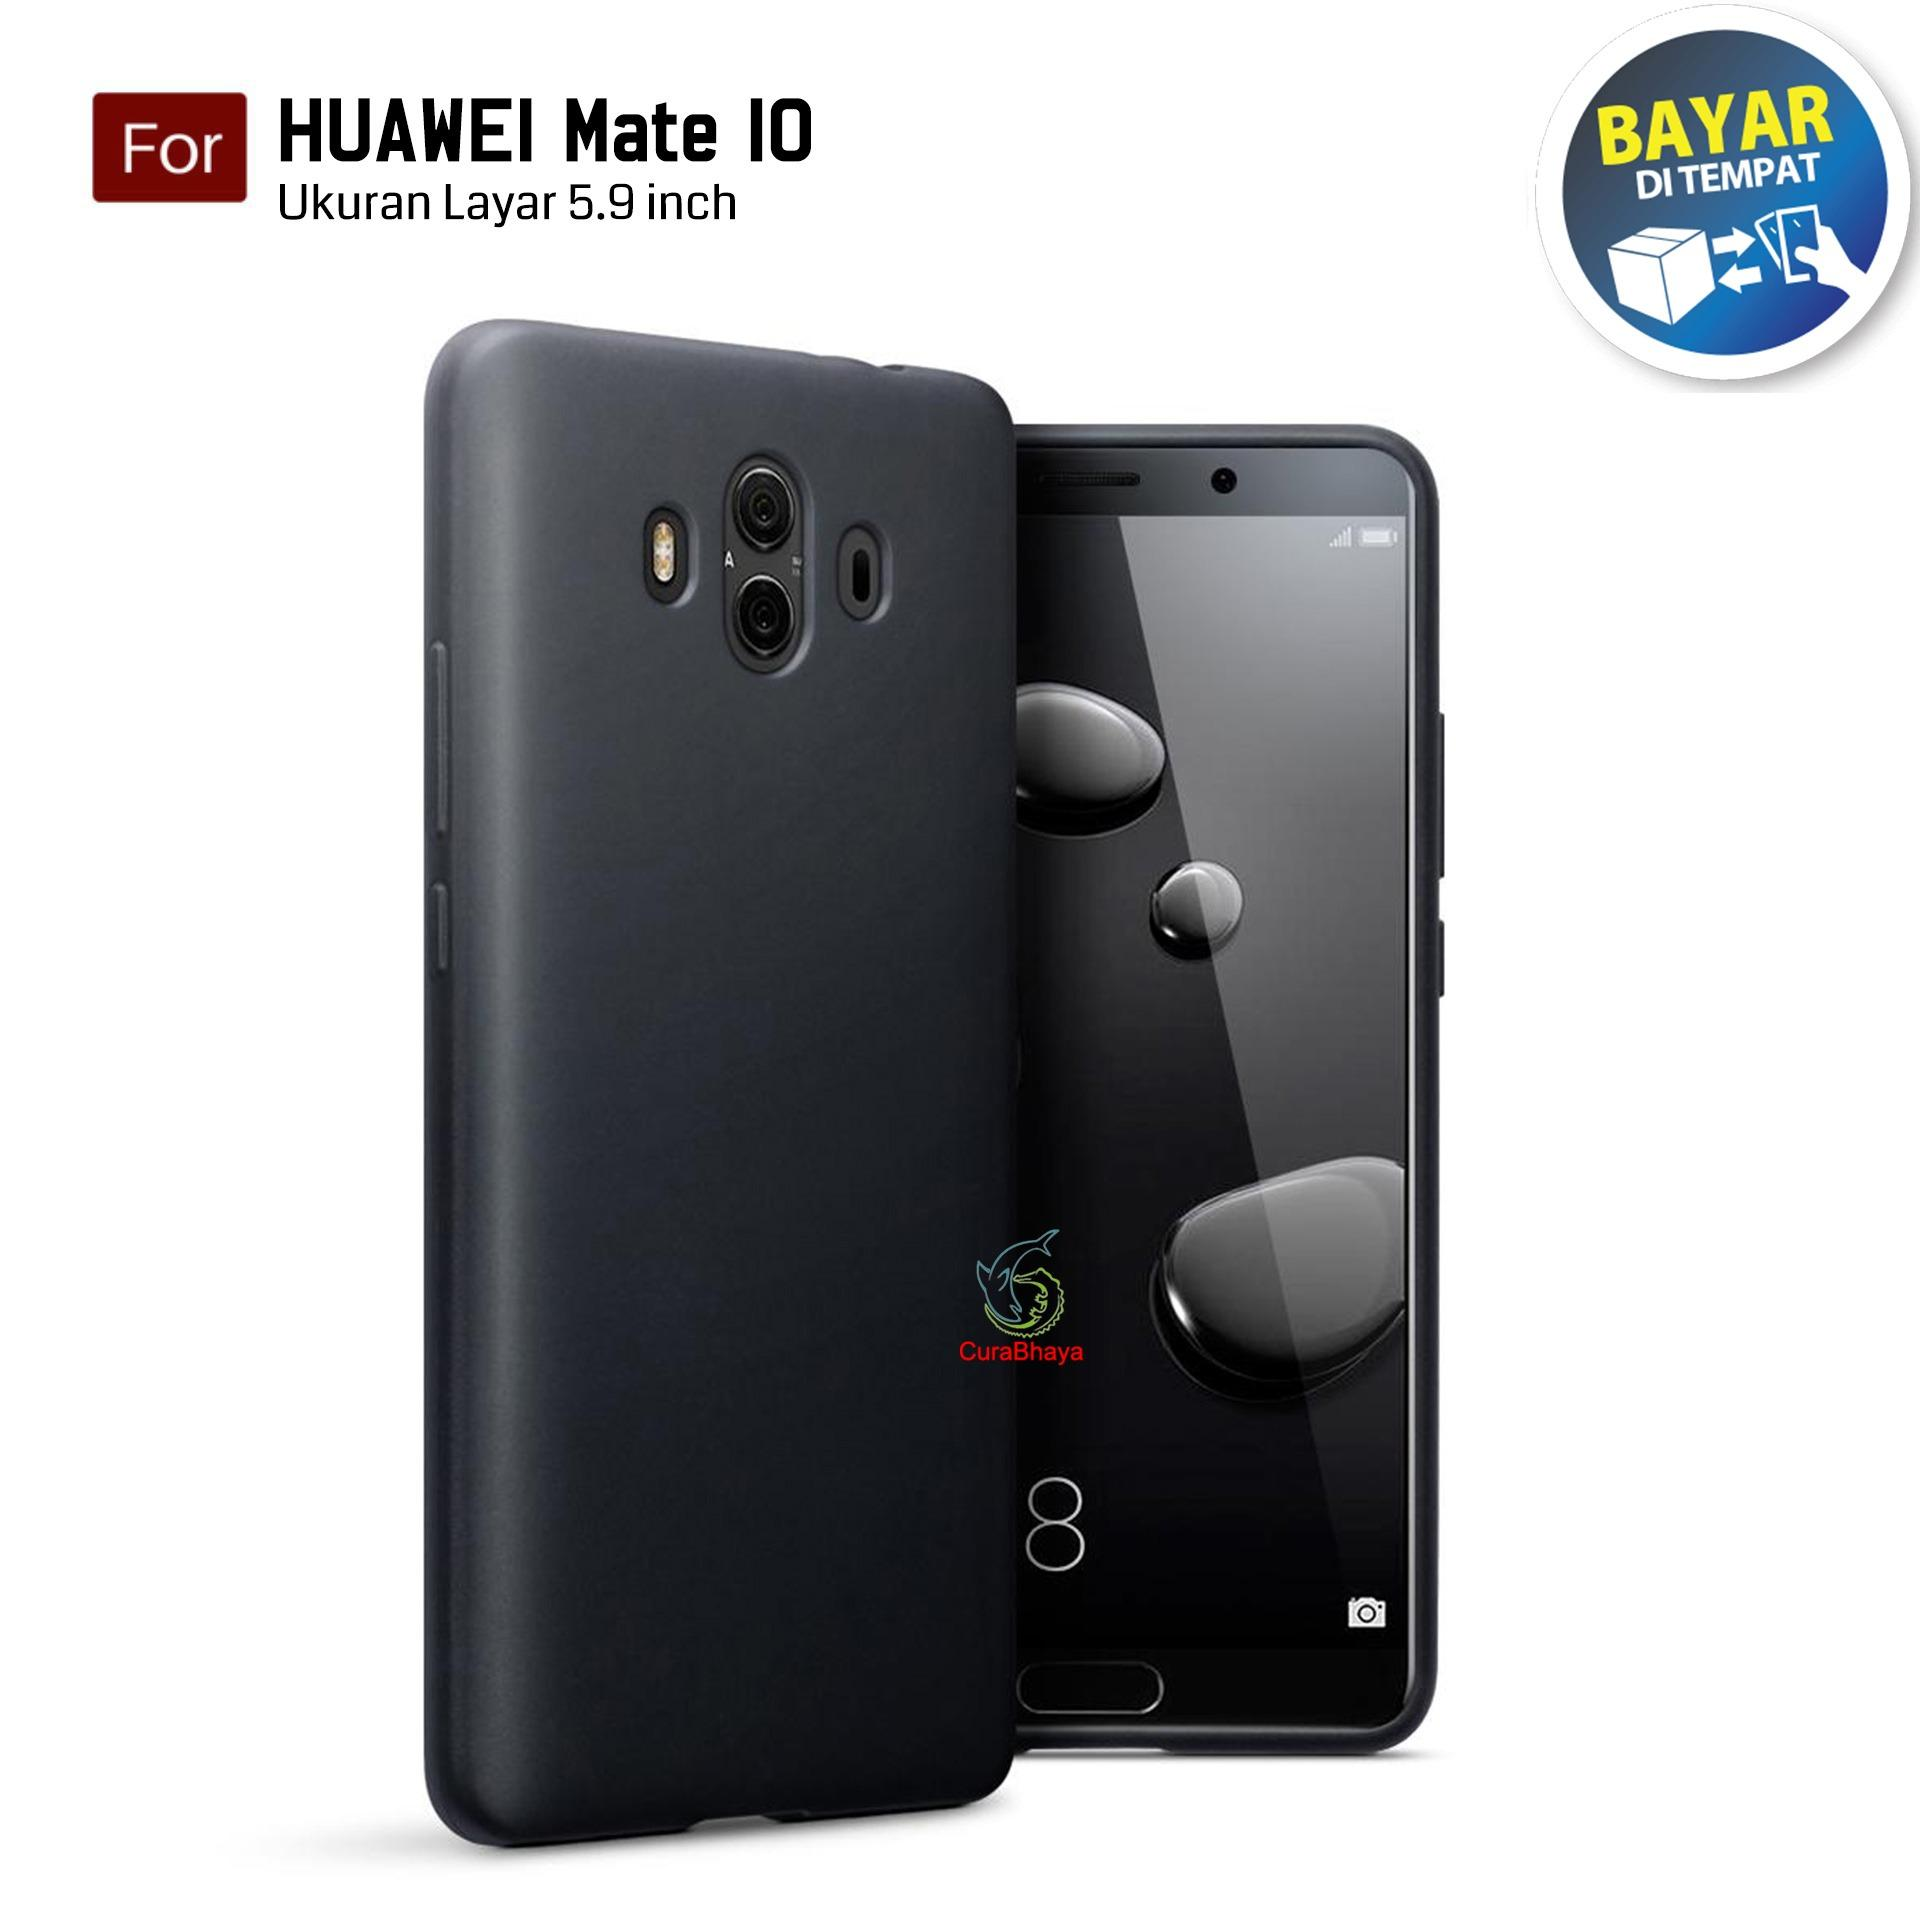 SOFTCASE ULTRATHIN FOR HUAWEI HONOR 4A HITAM CLEAR. Midnight Huawei Mate 10   Slim Case Black Matte Softcase Premium Baby Skin - Hitam